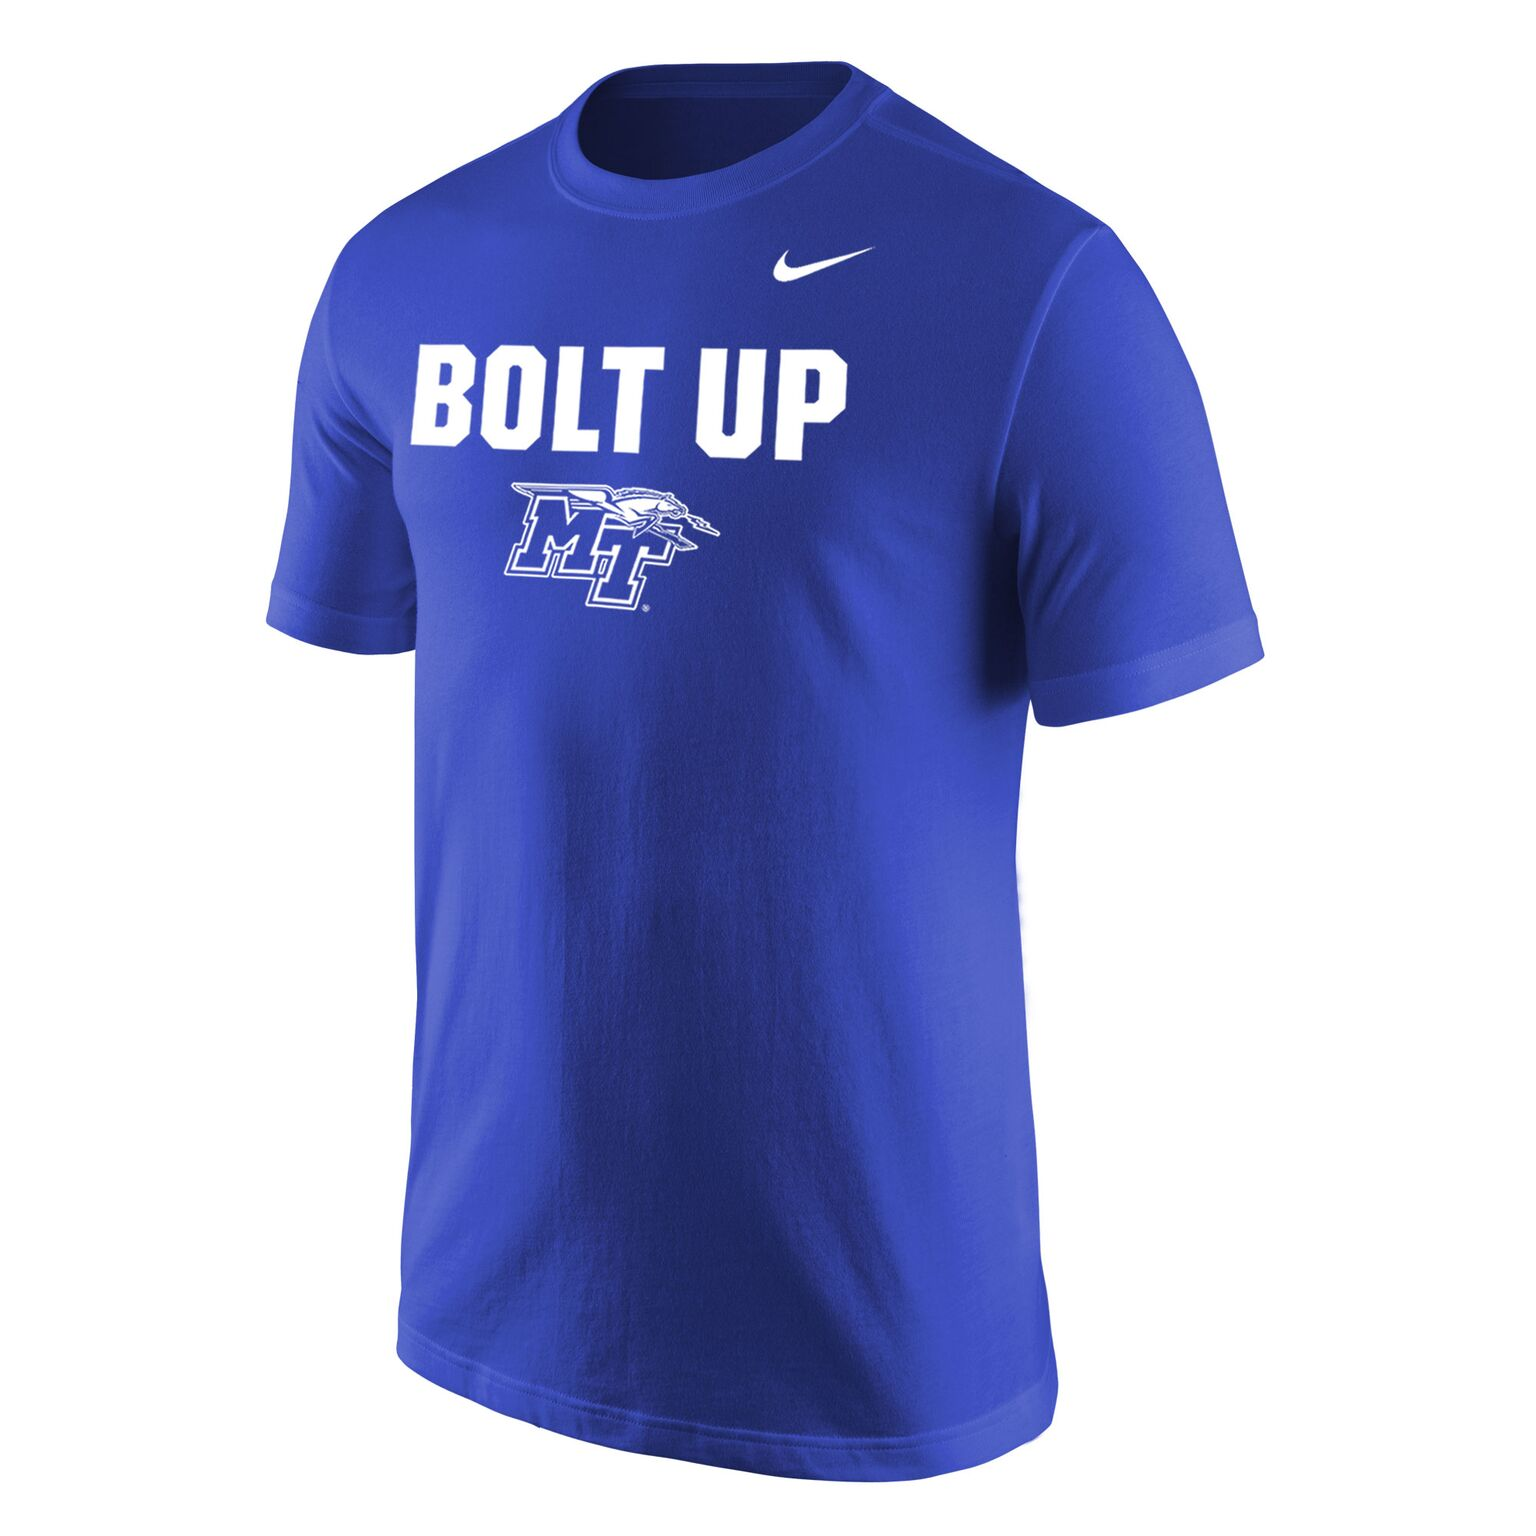 Middle Tennessee Bolt Up Nike® Tshirt